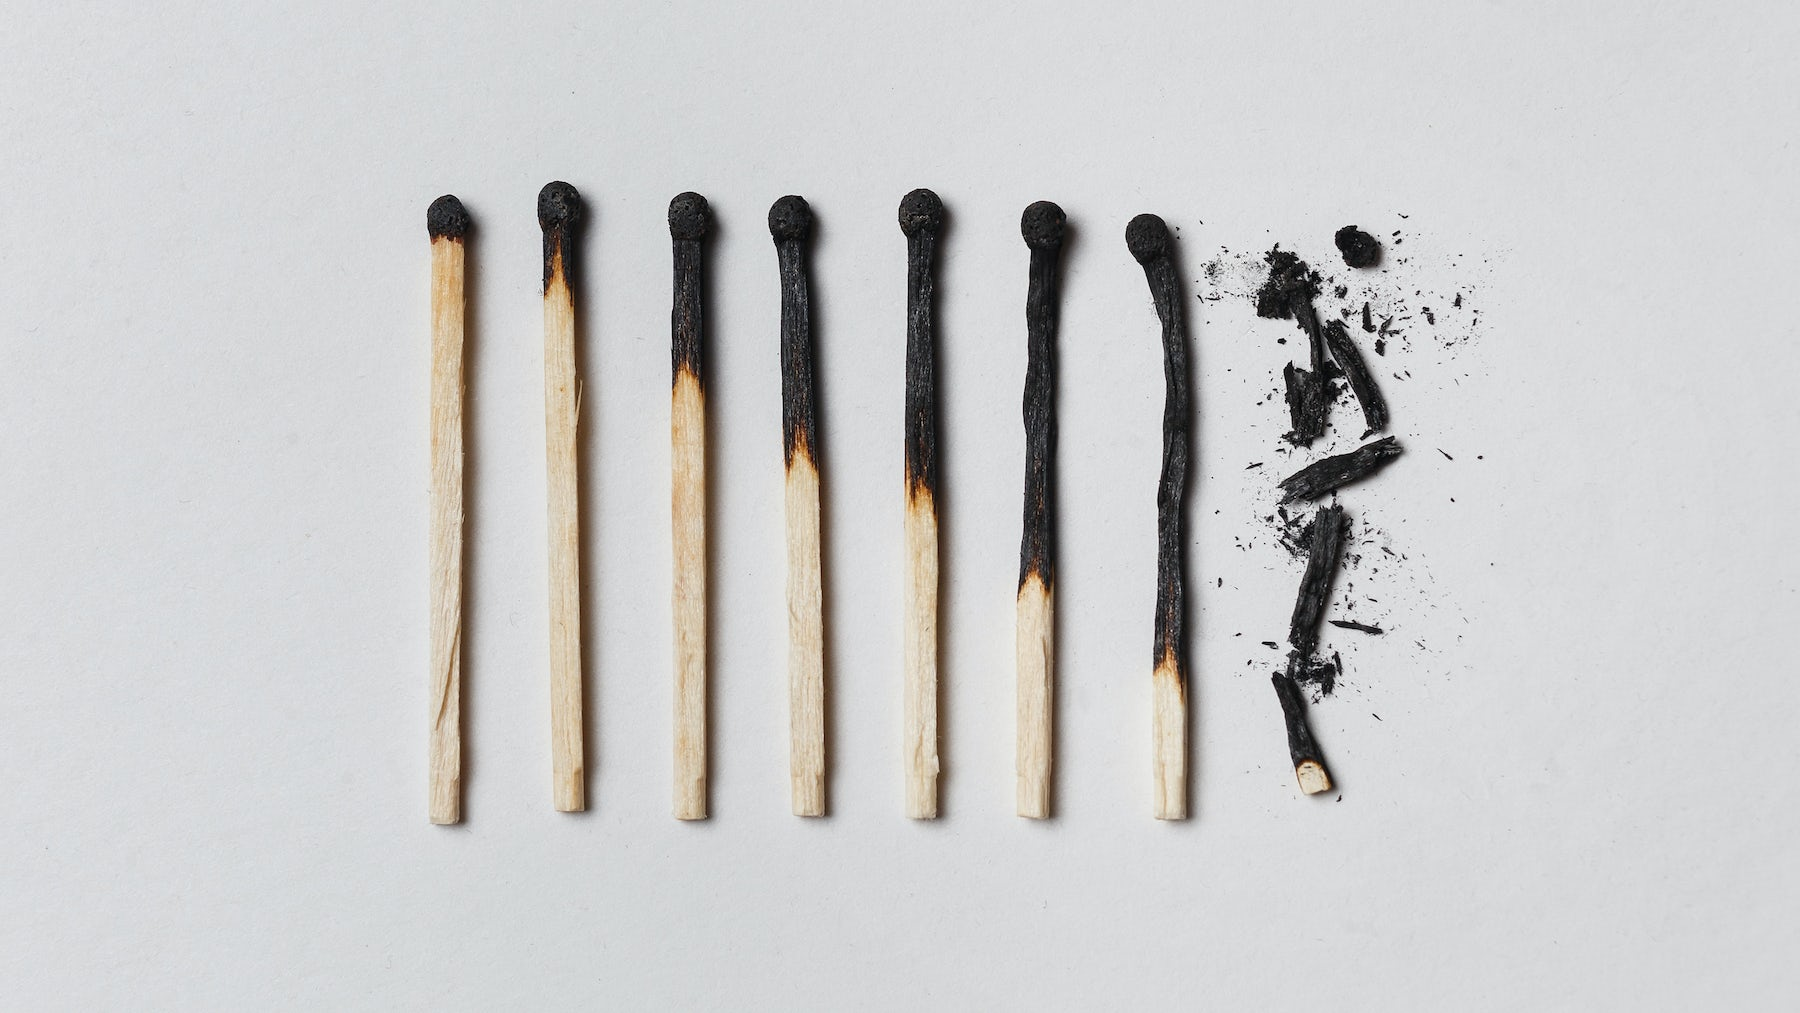 Careers Counsel   The Burnout Epidemic